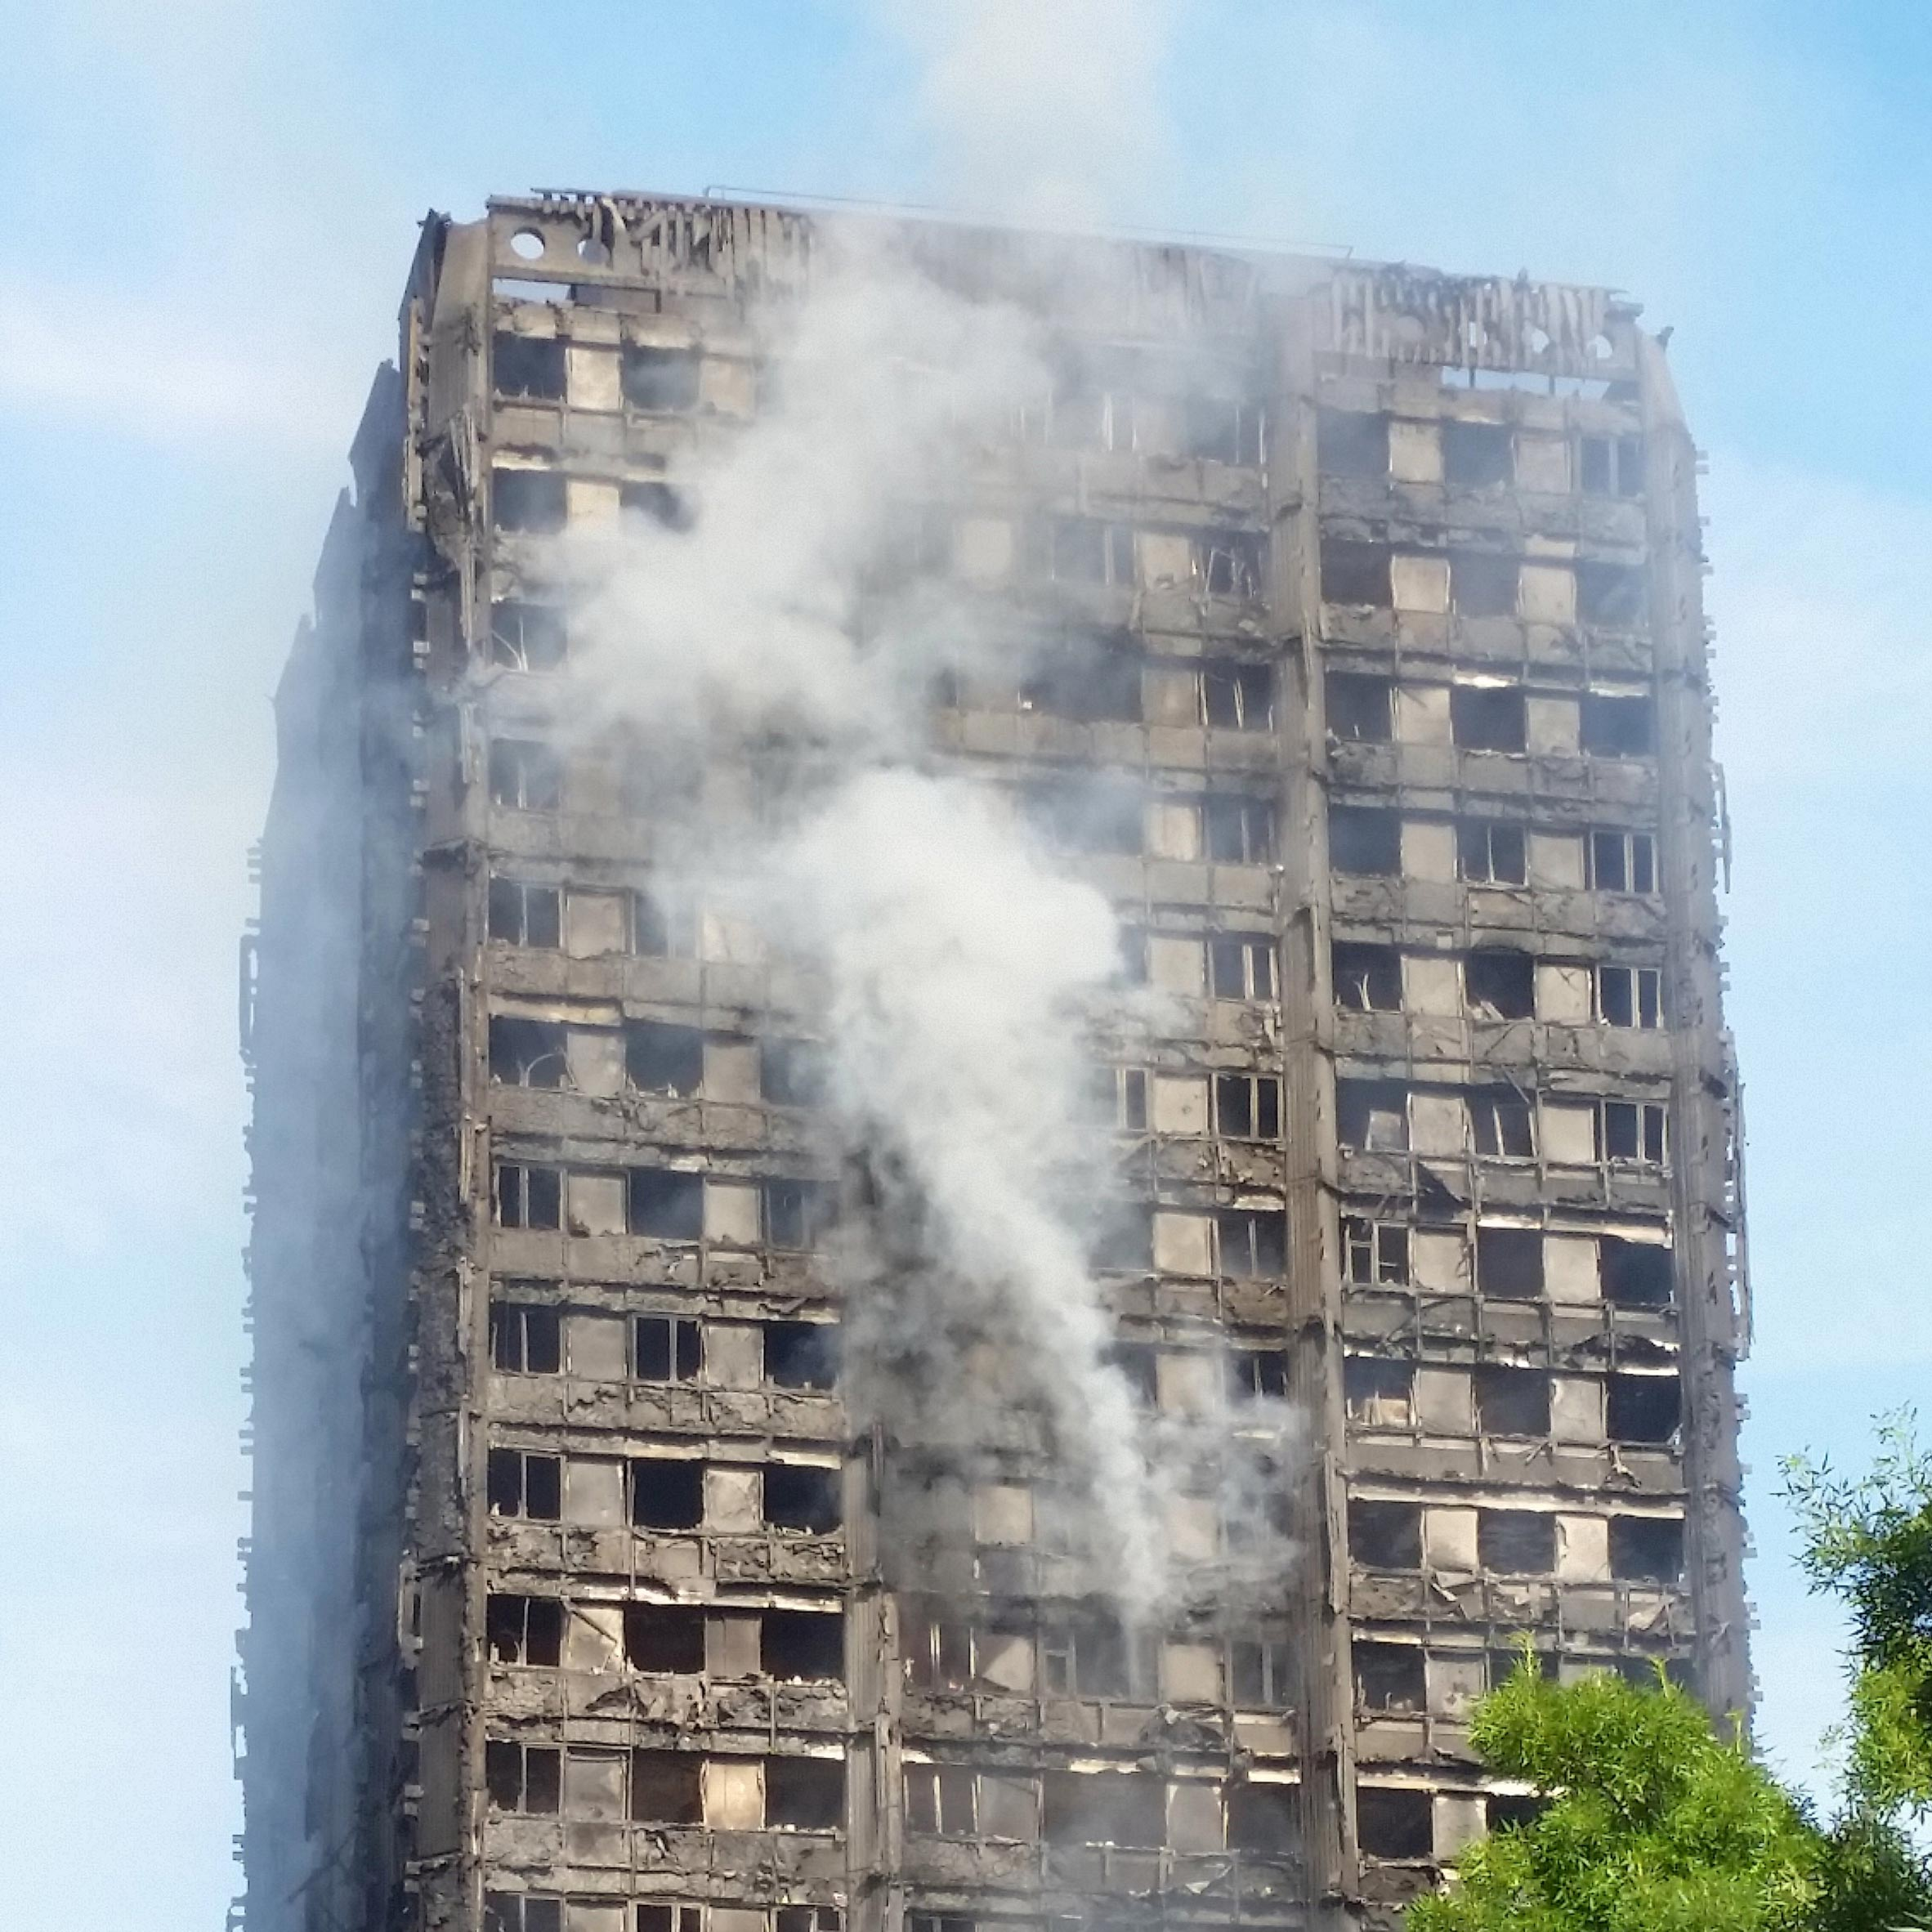 Grenfell Tower fire triggers emergency safety review across UK's 4,000 high-rises